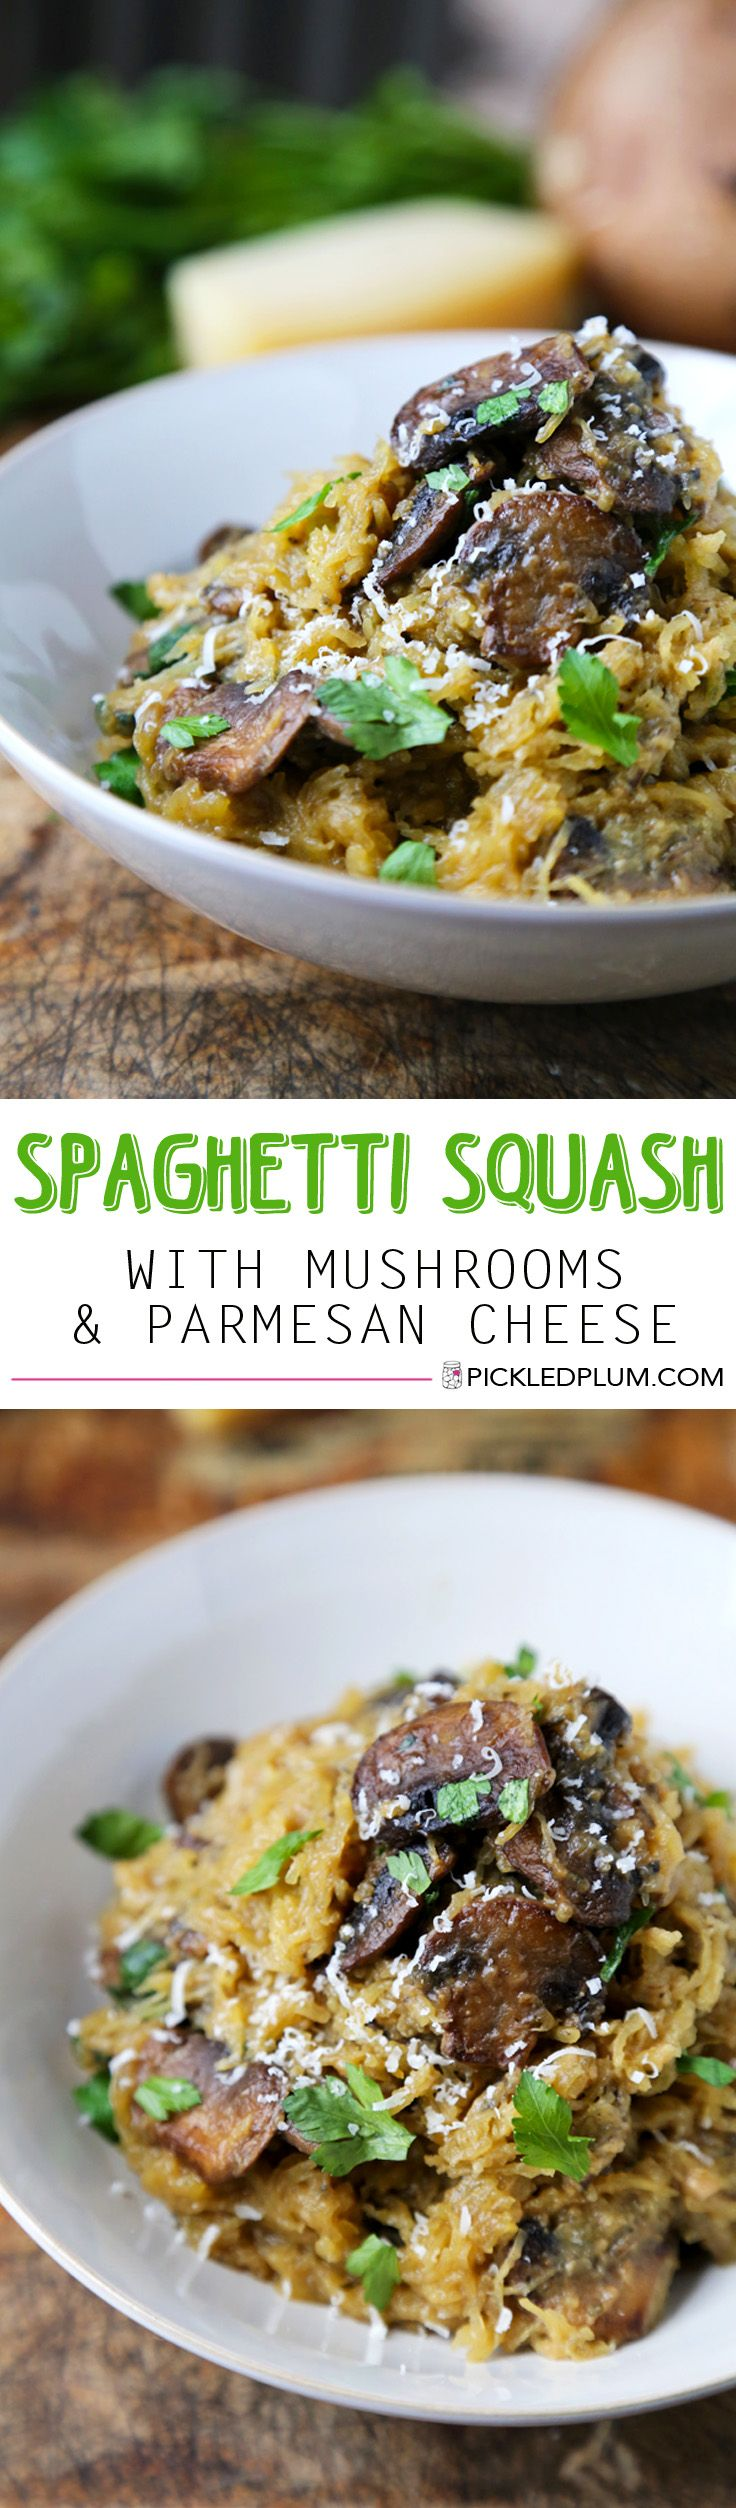 Baked Spaghetti Squash with Mushrooms and Parmesan Cheese. The perfect side dish for those who aren't crazy for veggies. This spaghetti squash recipe is earthy and ooey gooey! http://www.pickledplum.com/spaghetti-squash-healthy-recipe/